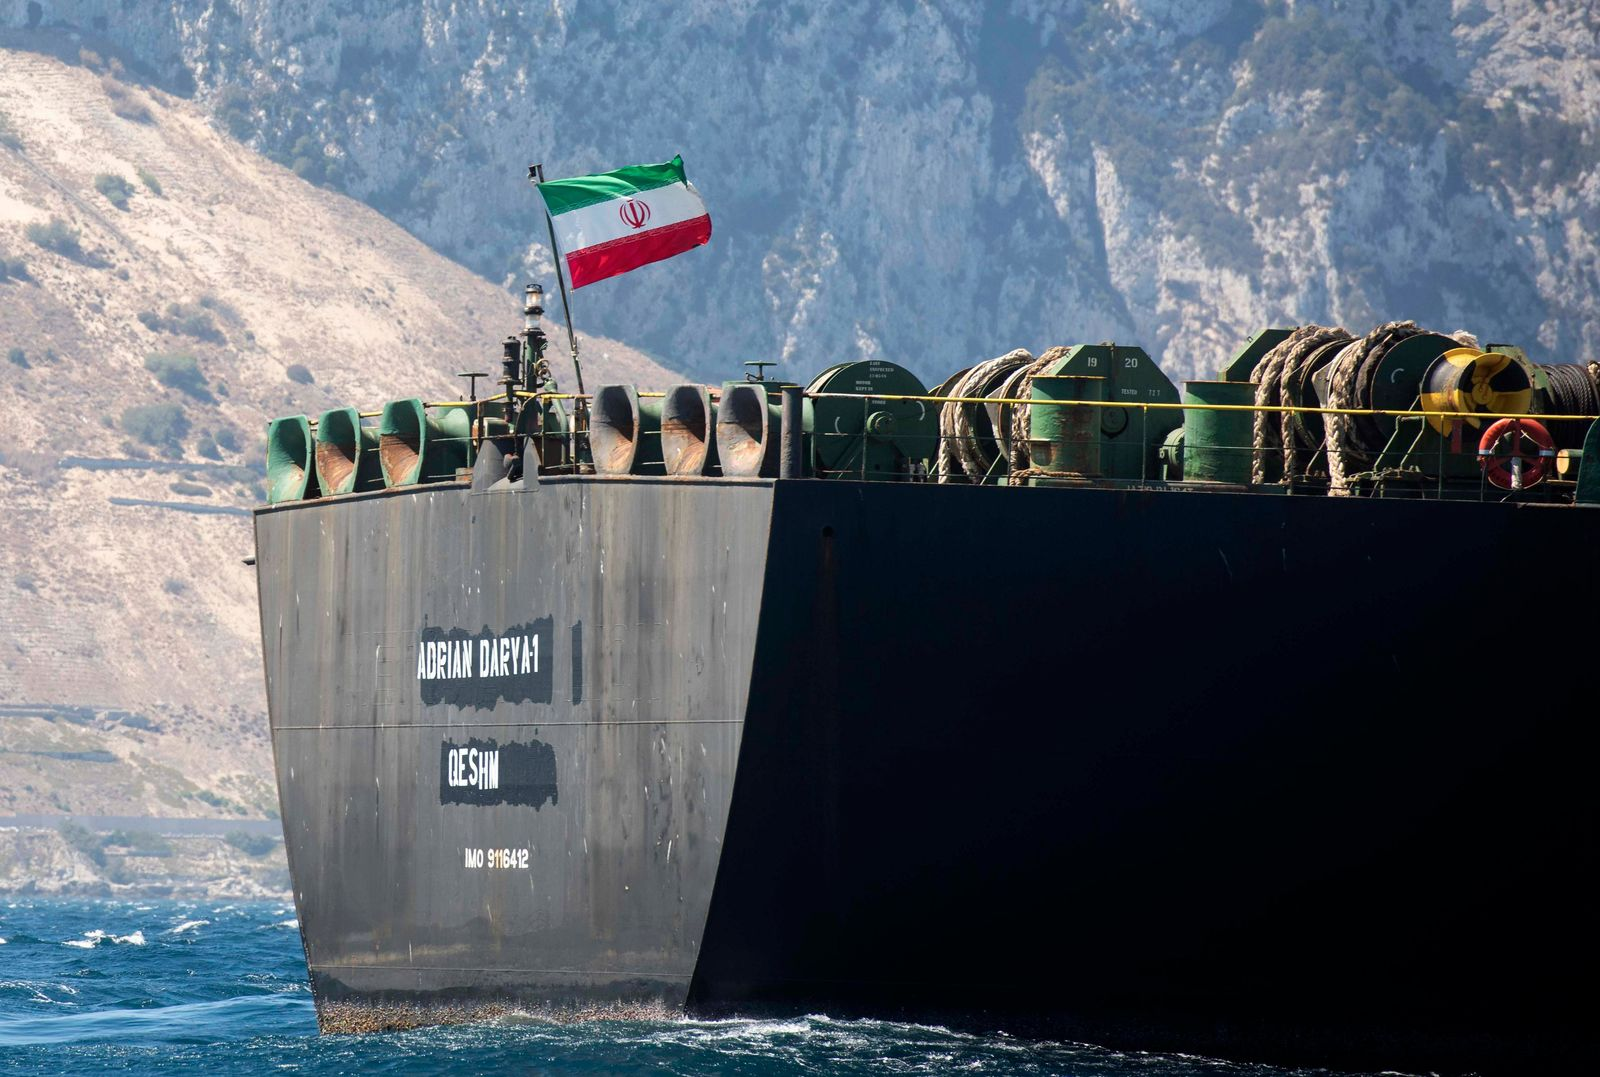 Renamed Adrian Aryra 1 super tanker hosting an Iranian flag, sails in the British territory of Gibraltar, Sunday, Aug. 18, 2019. (AP Photo/Marcos Moreno)